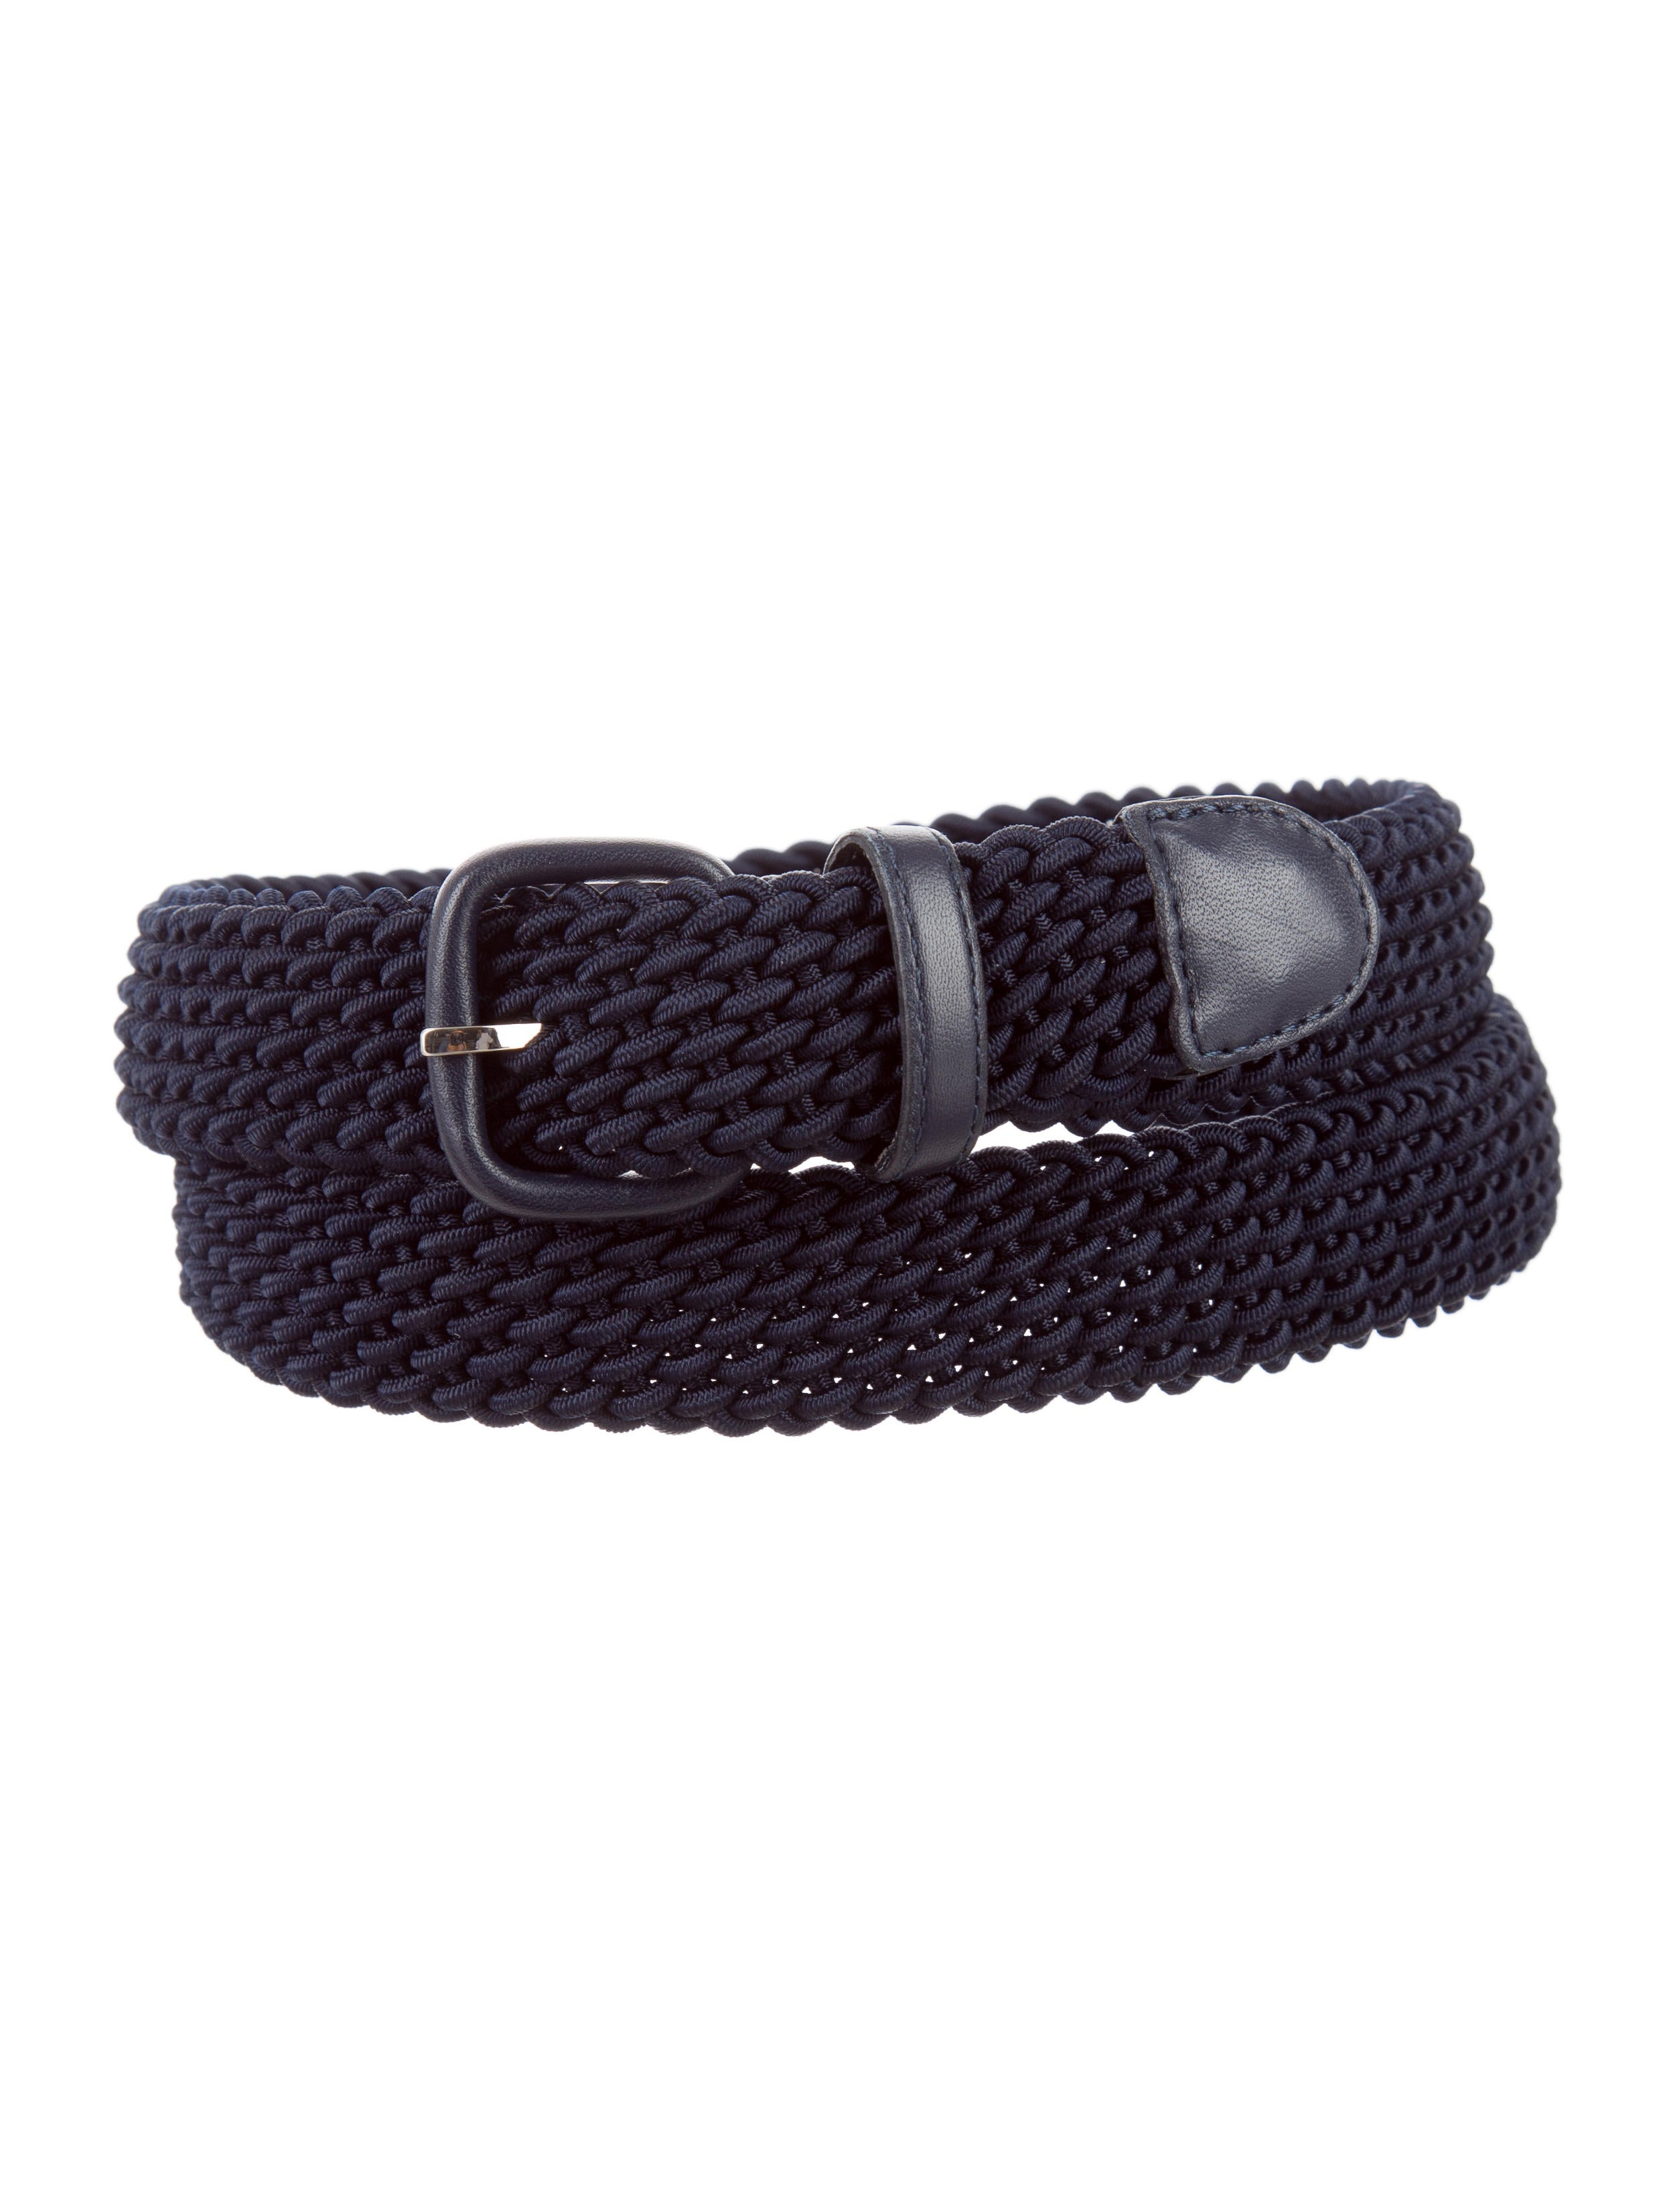 Charvet Woven Leather-Trimmed Belt - Accessories - WCHRV20459 | The ...